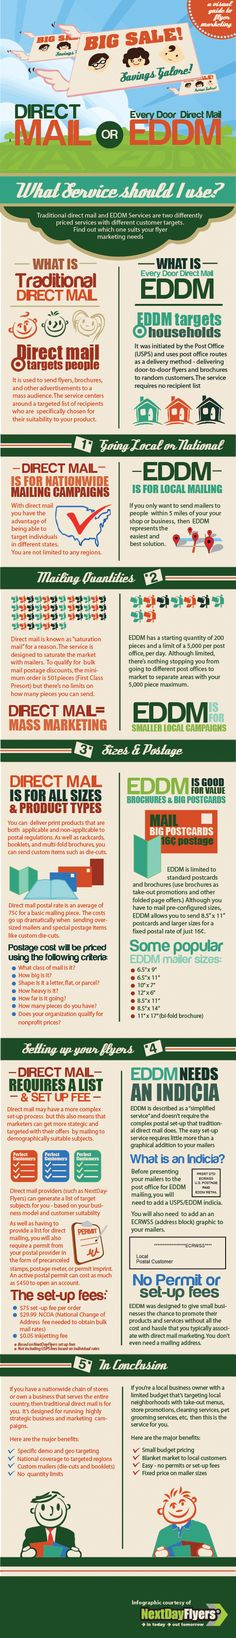 EDDM (Every Door Direct Mail) or Traditional Mail Services Infographic